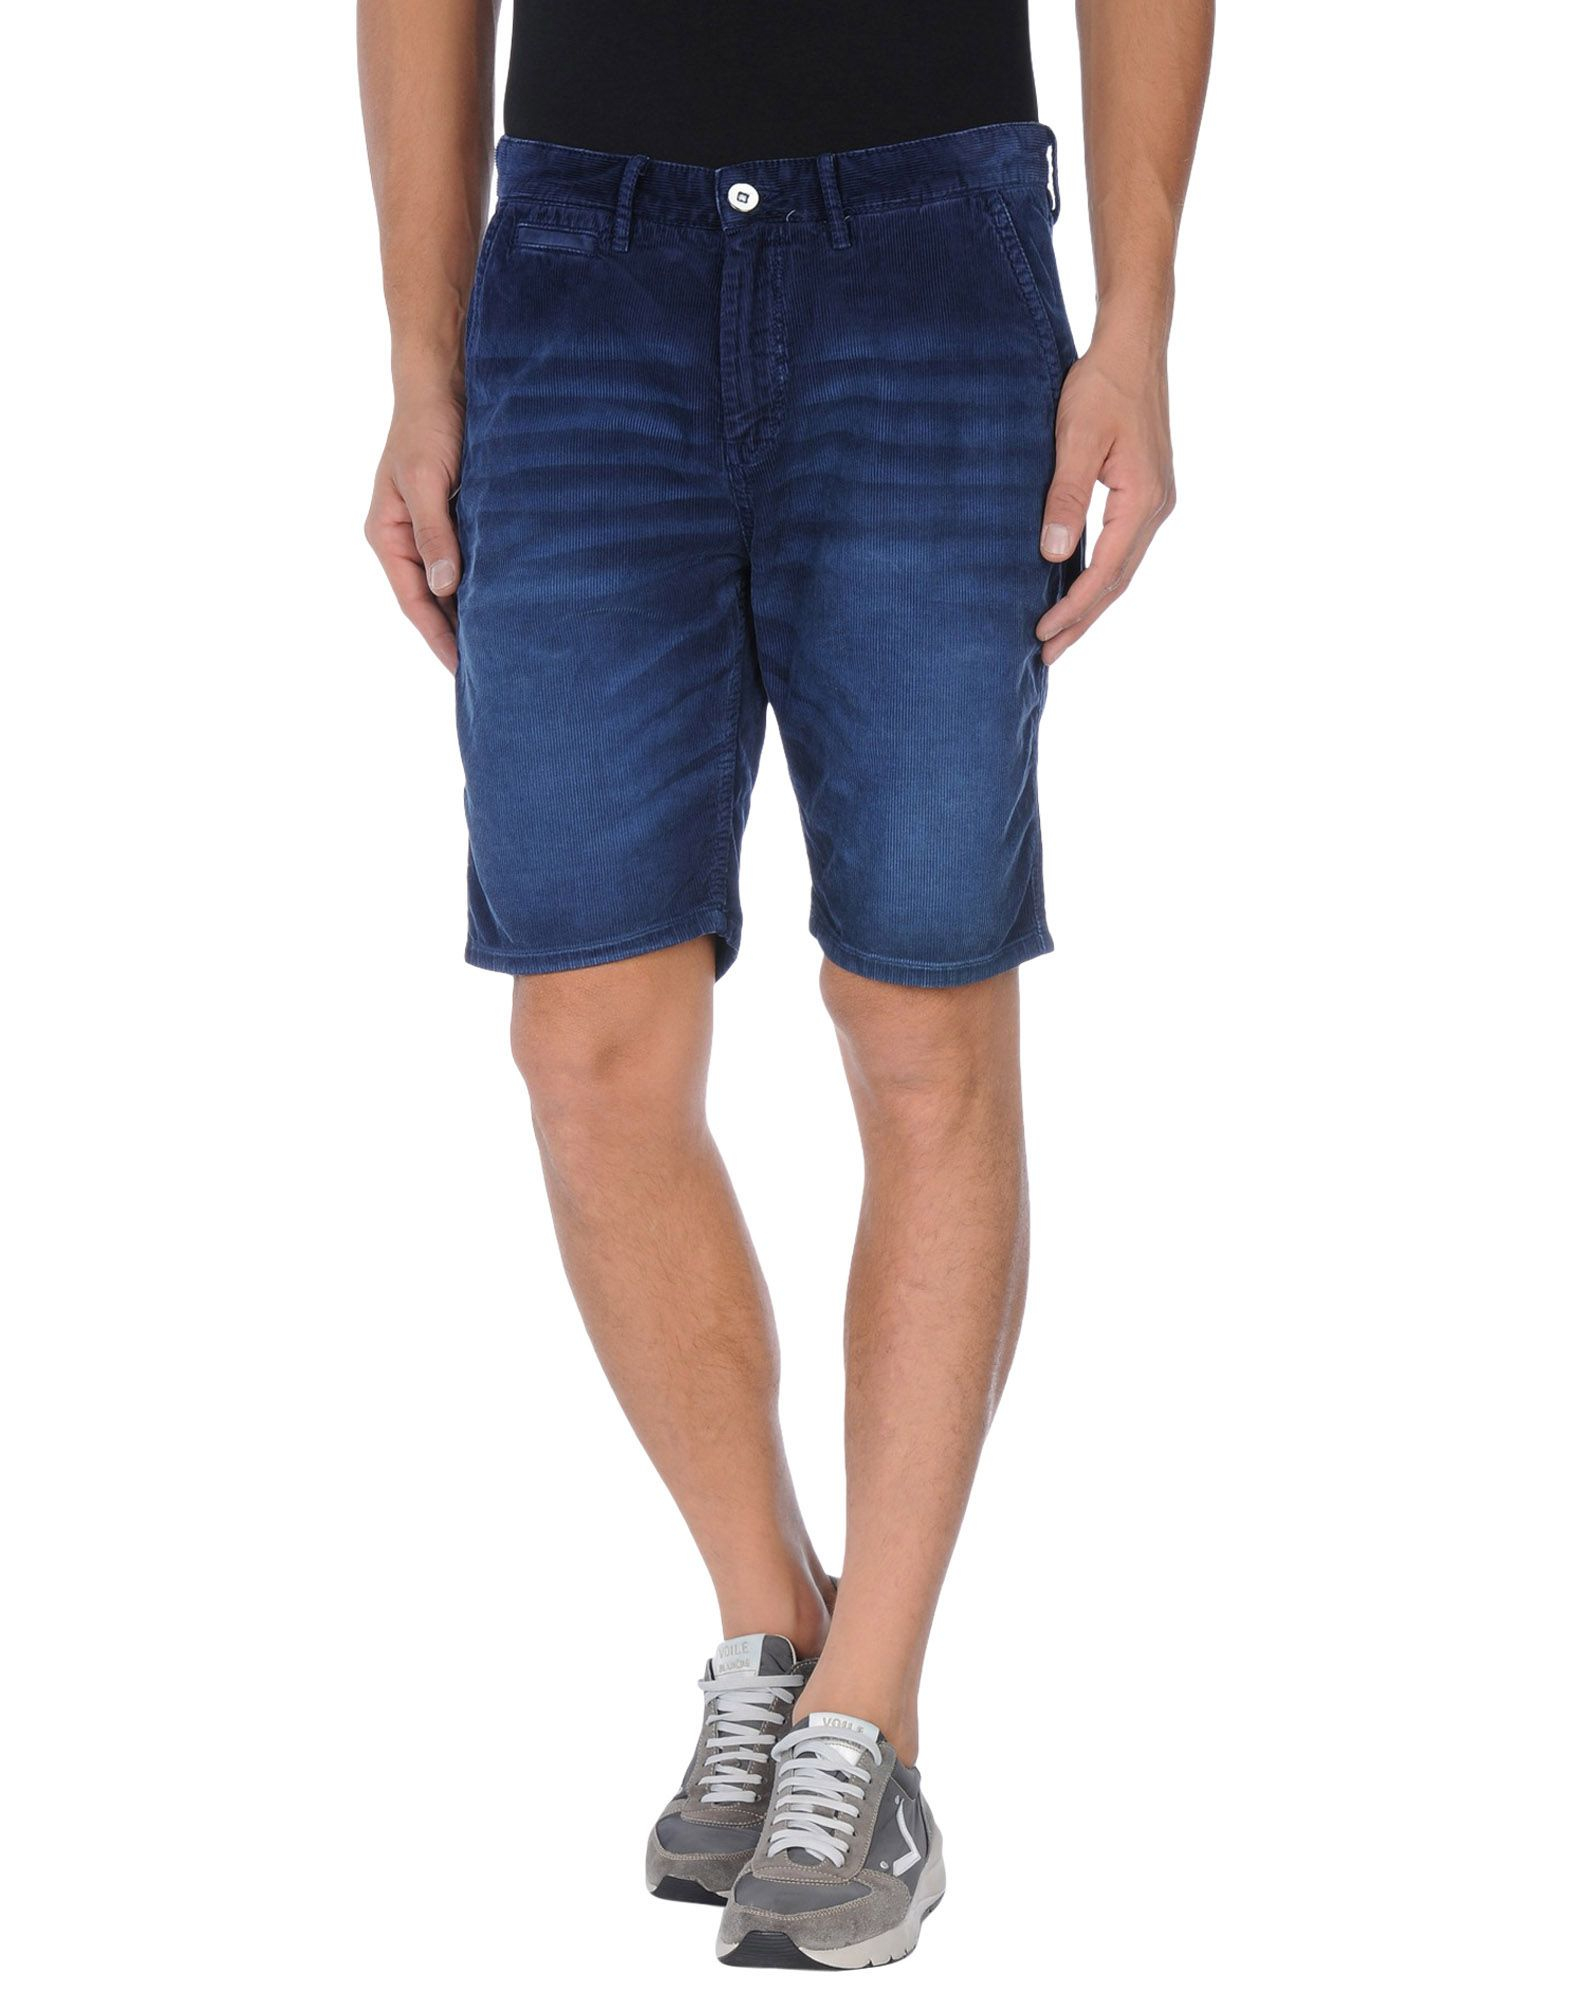 Find the perfect shorts for any occasion from Ann Taylor. Browse the collection for flattering and fun styles like pleated, mid-length, and tie waist shorts.